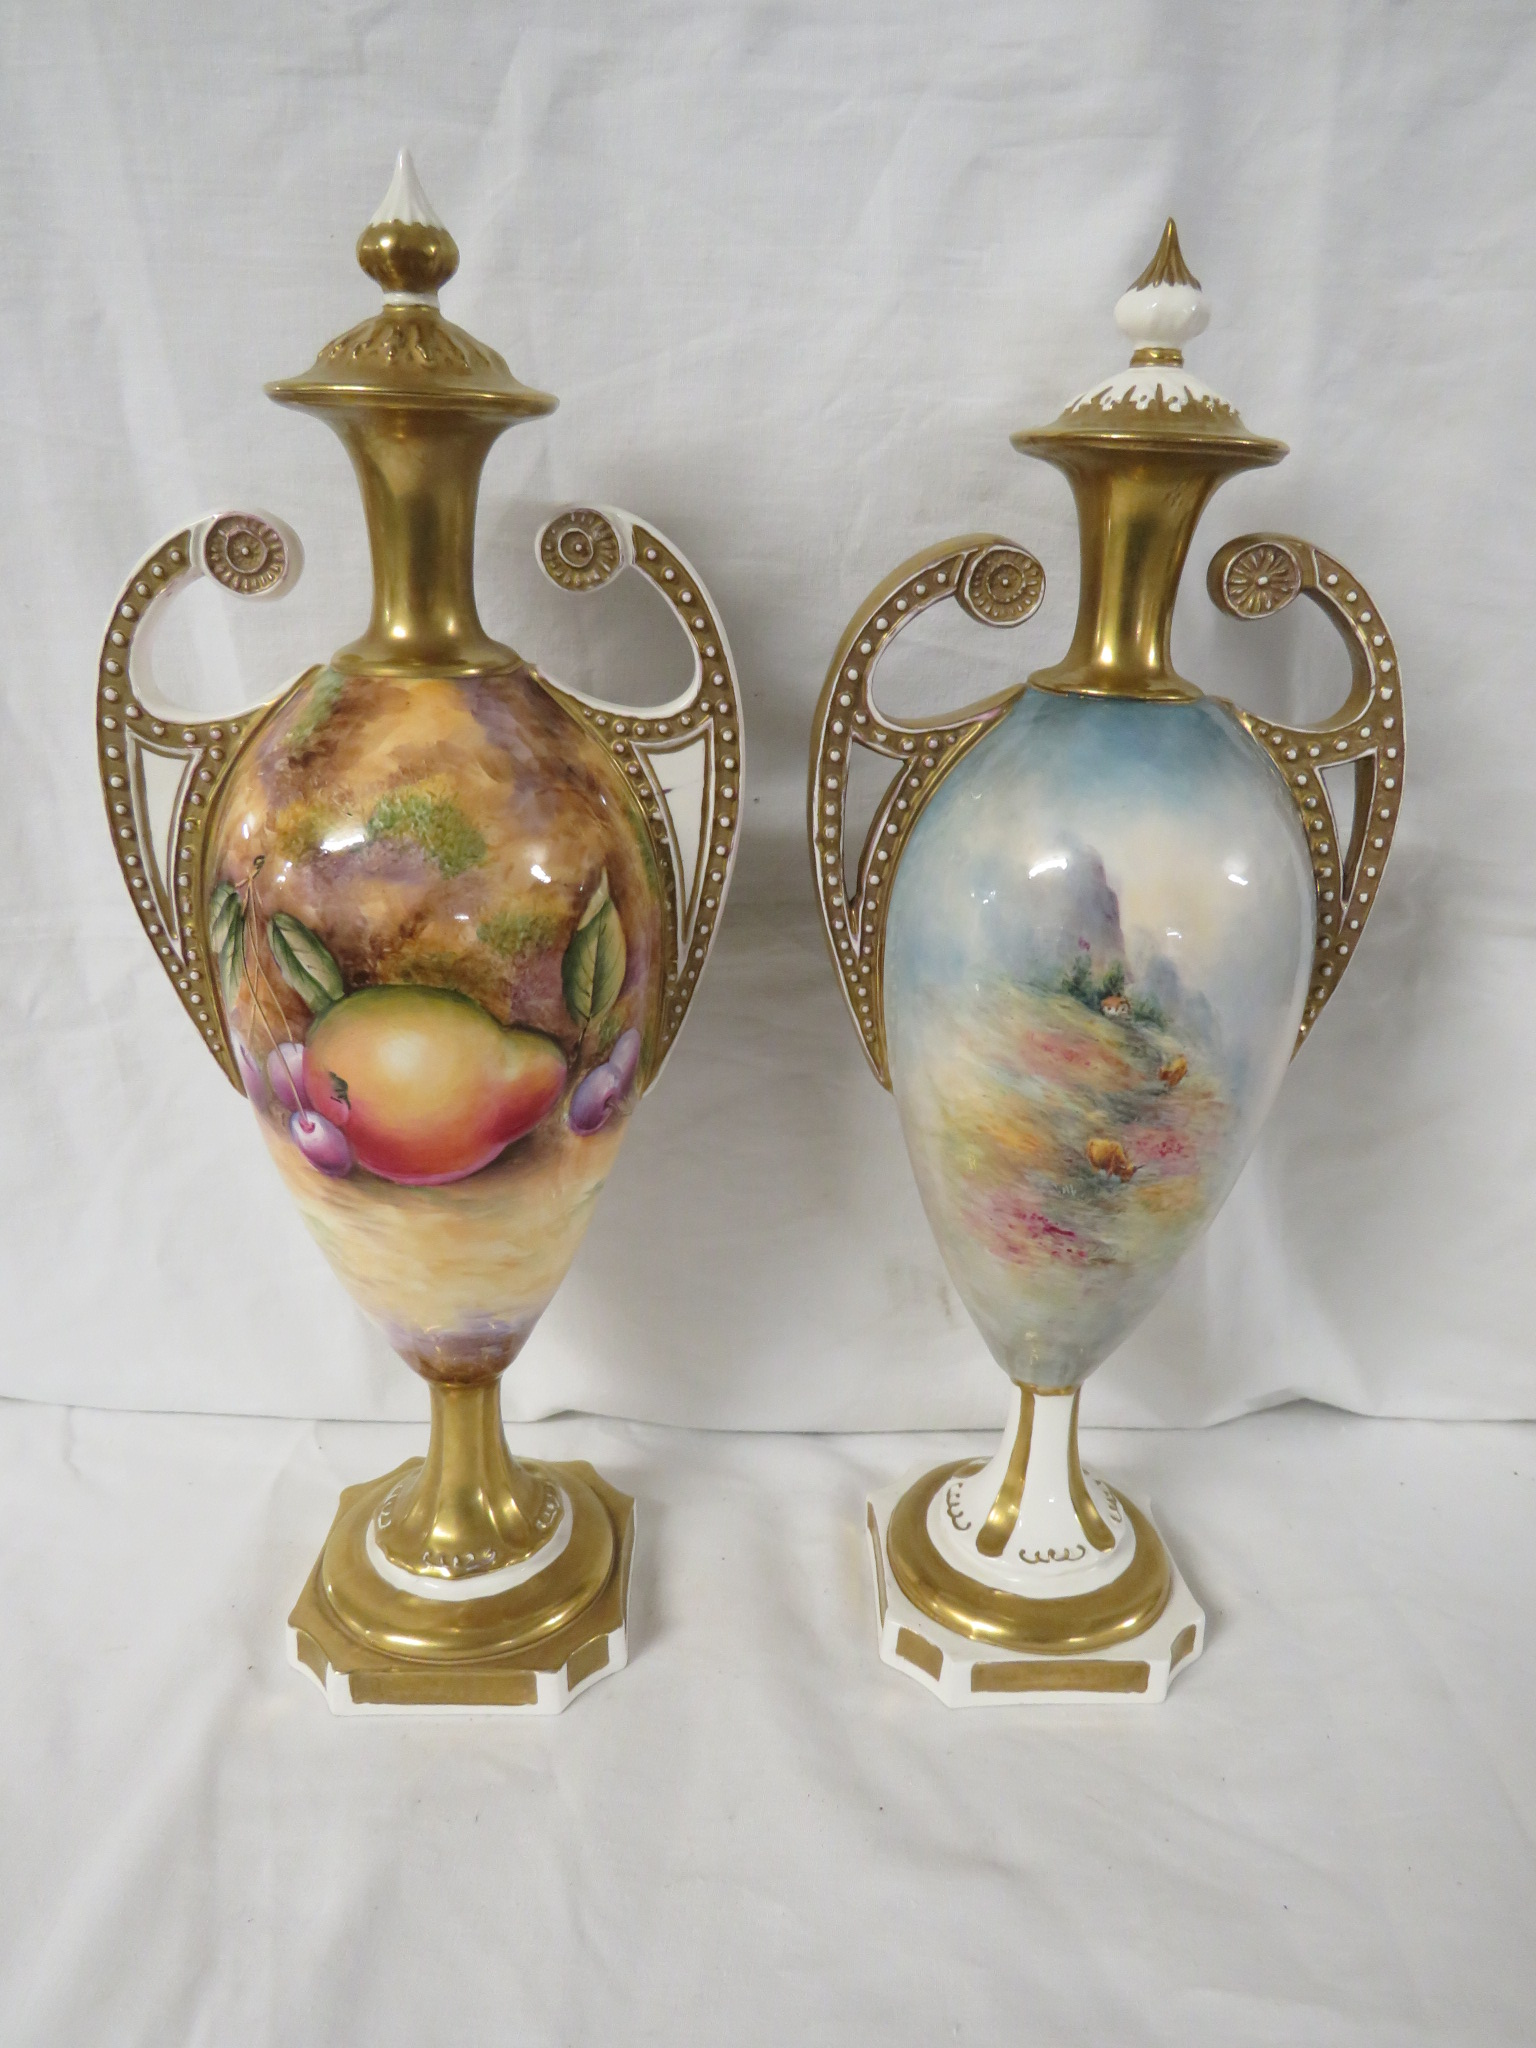 Lot 40 - Two David Bowkett Ceramics porcelain vases, urn shaped with two scrolled handles moulded with